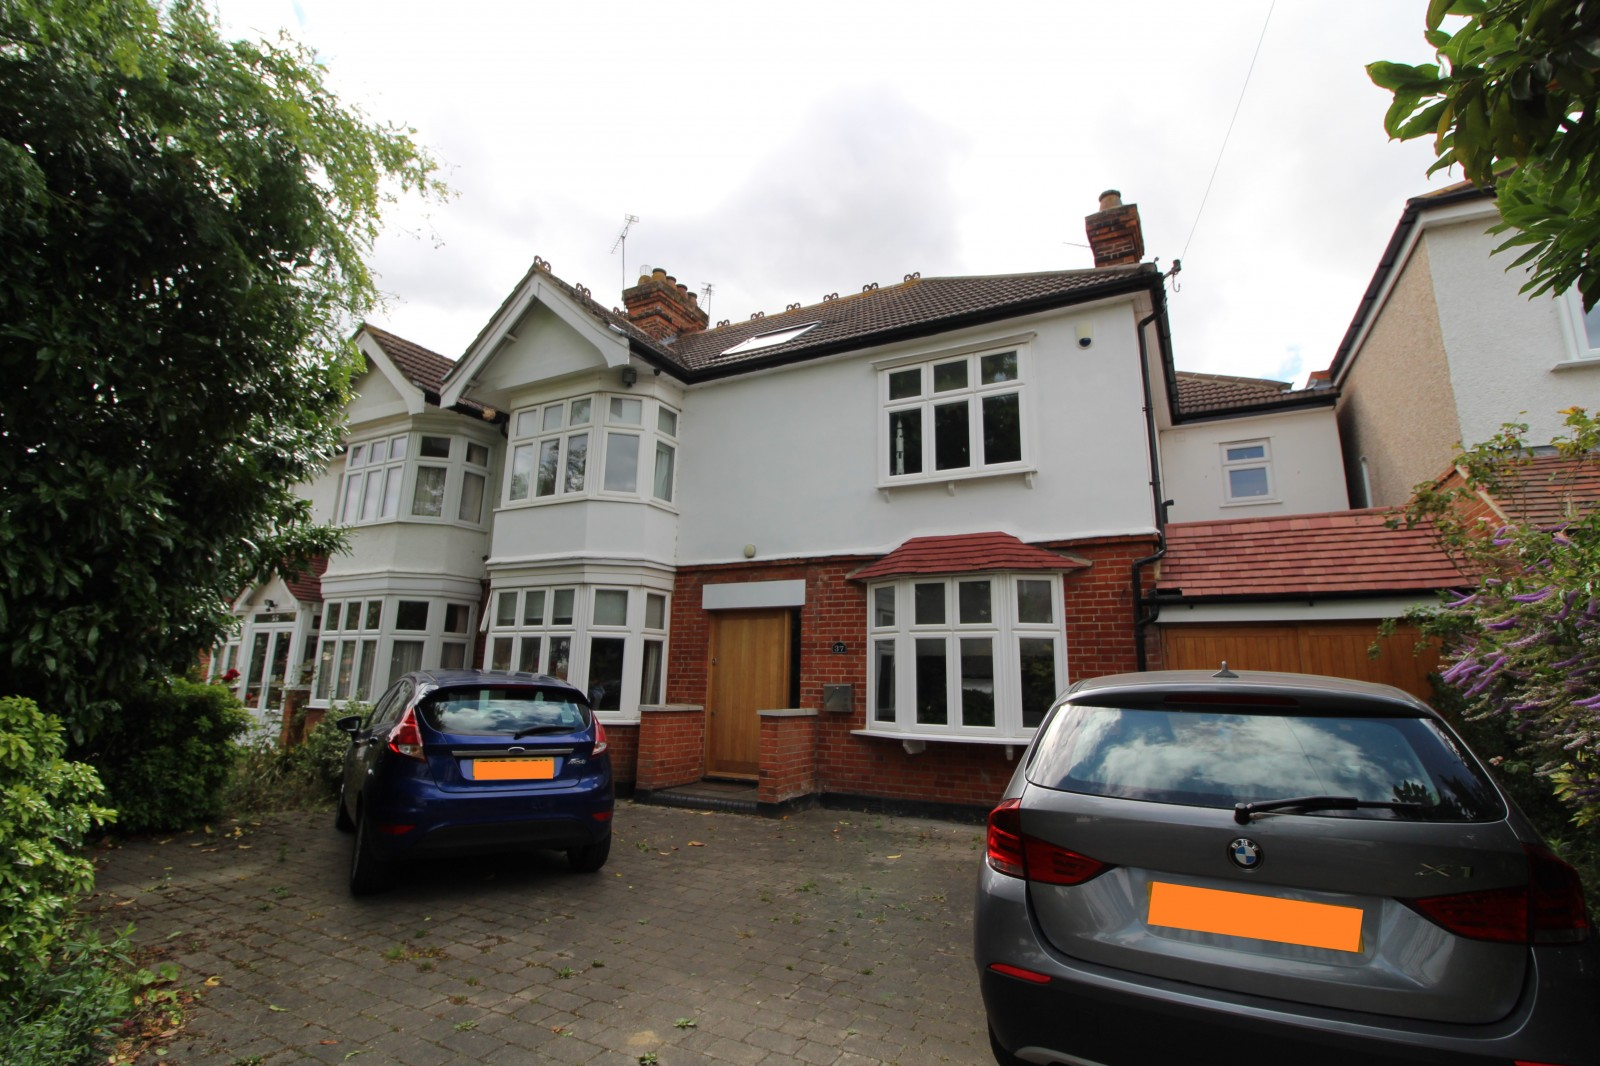 Grosvenor Gardens, Upminster, Essex, RM14